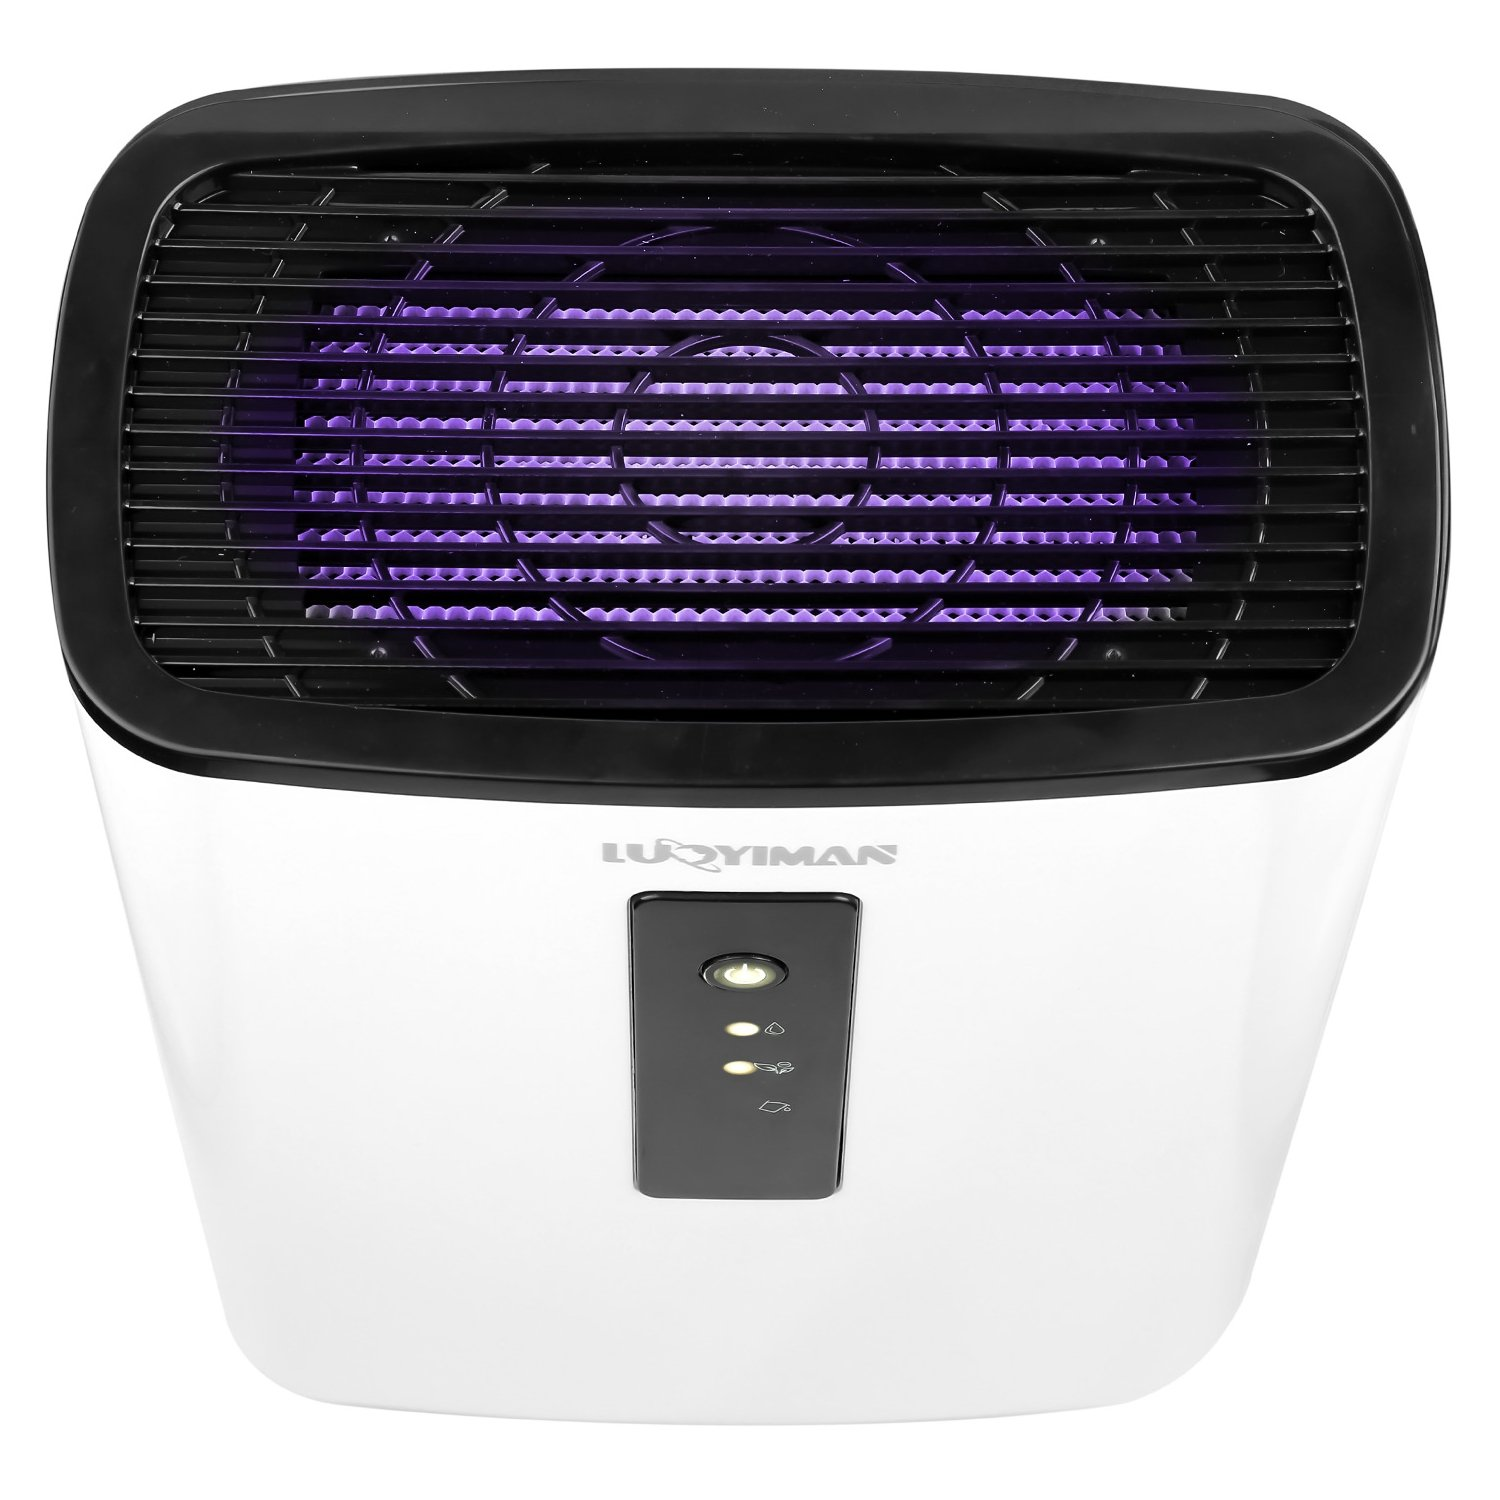 LUOYIMAN Dehumidifier Electric Home Dehumidifier Quiet Operation with UV Sterilization (2.5 Liter) by LUOYIMAN (Image #2)